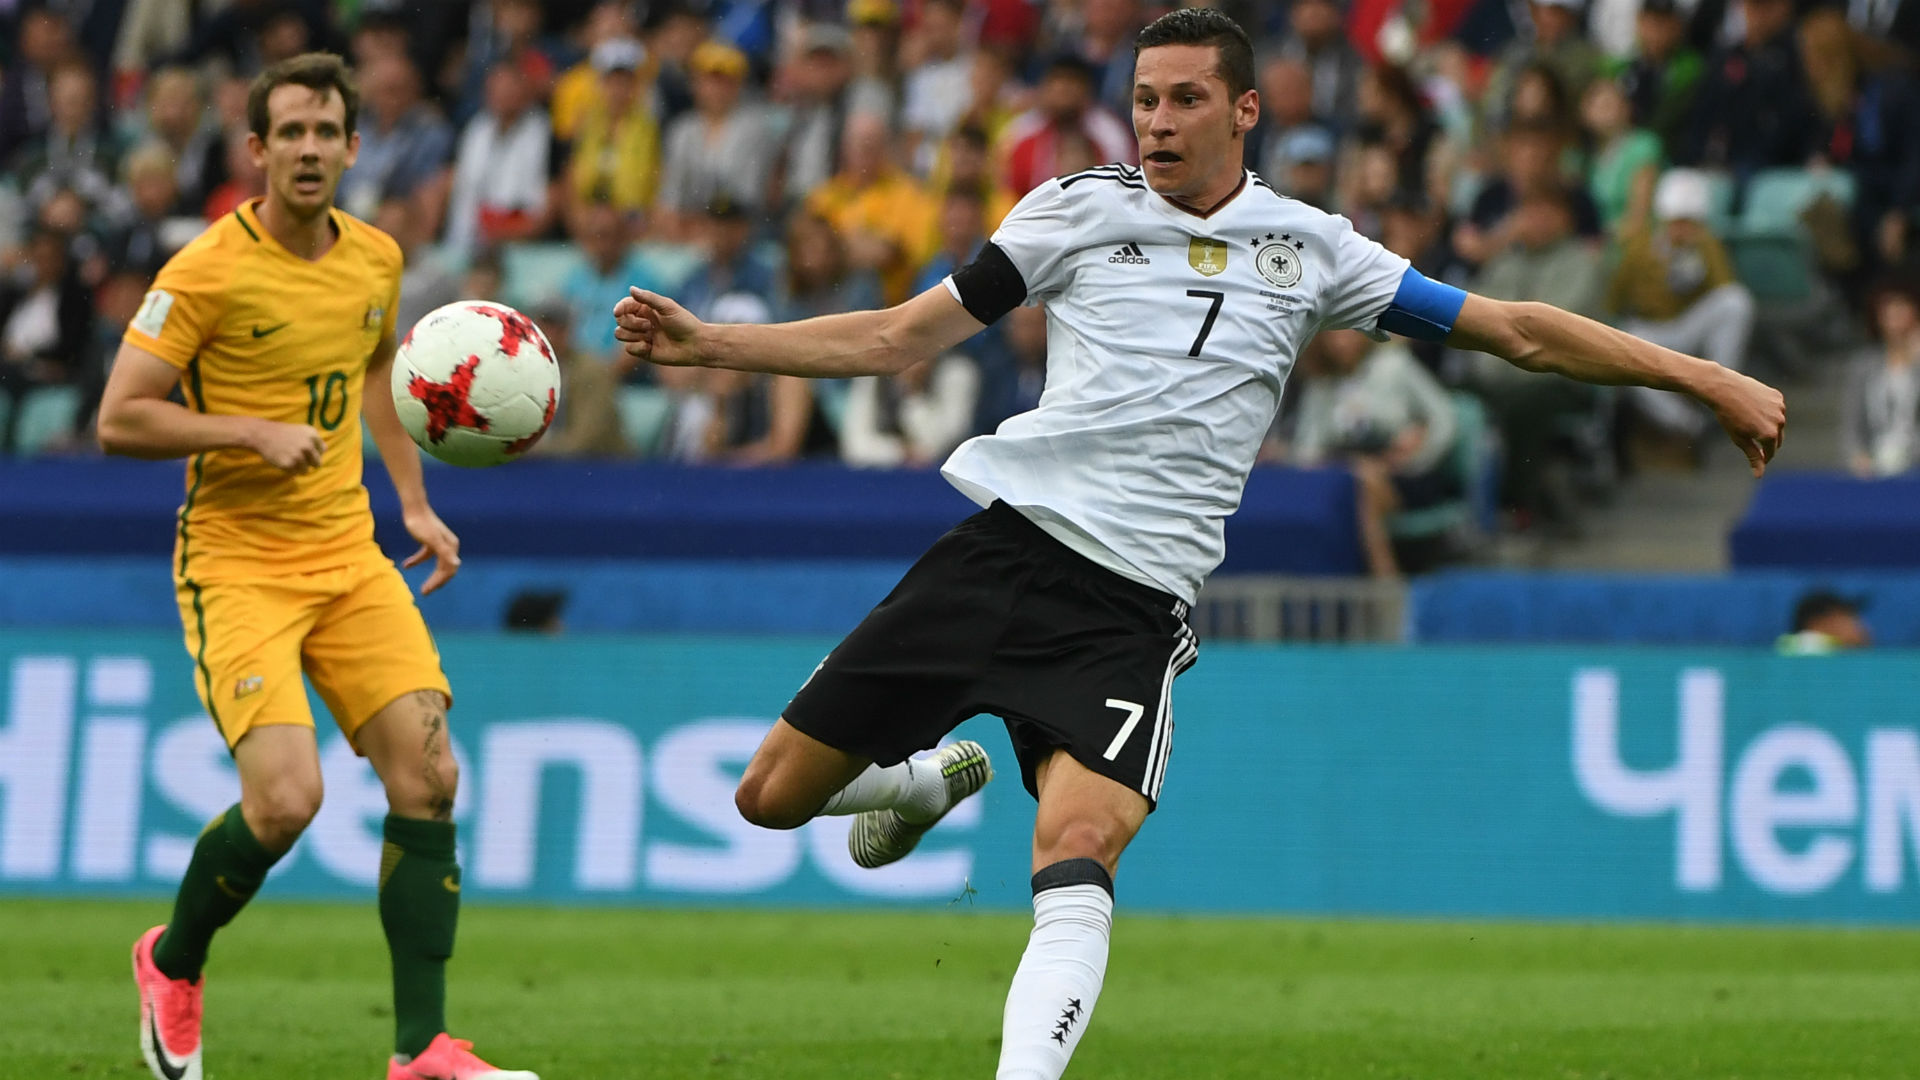 Confederations Cup: Germany reaches semis amid more replay confusion